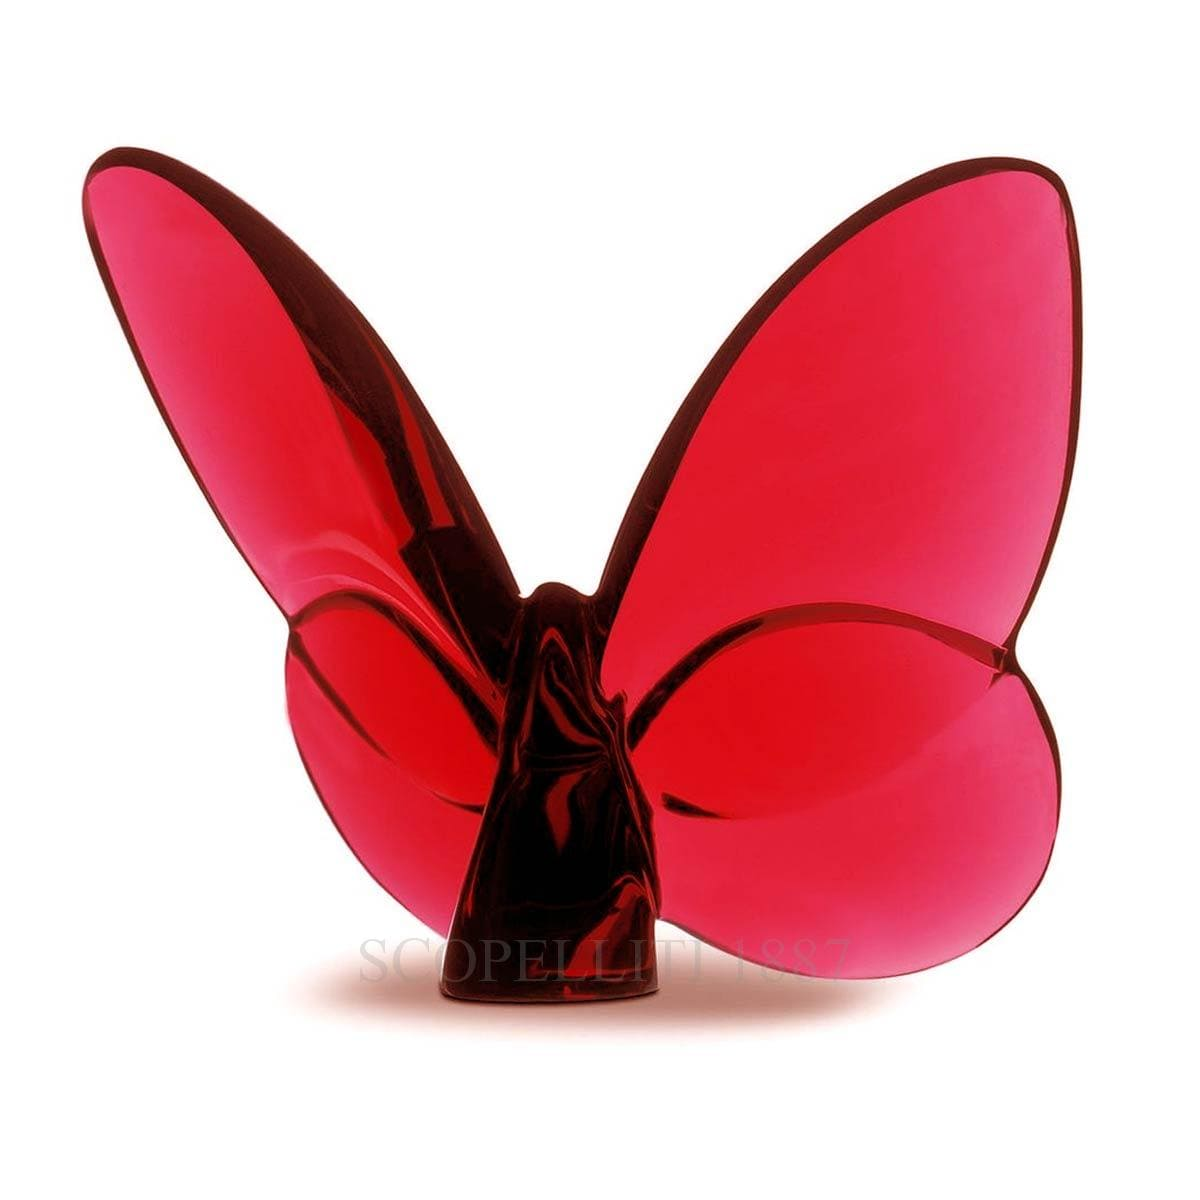 baccarat french design red porte bonheur butterfly